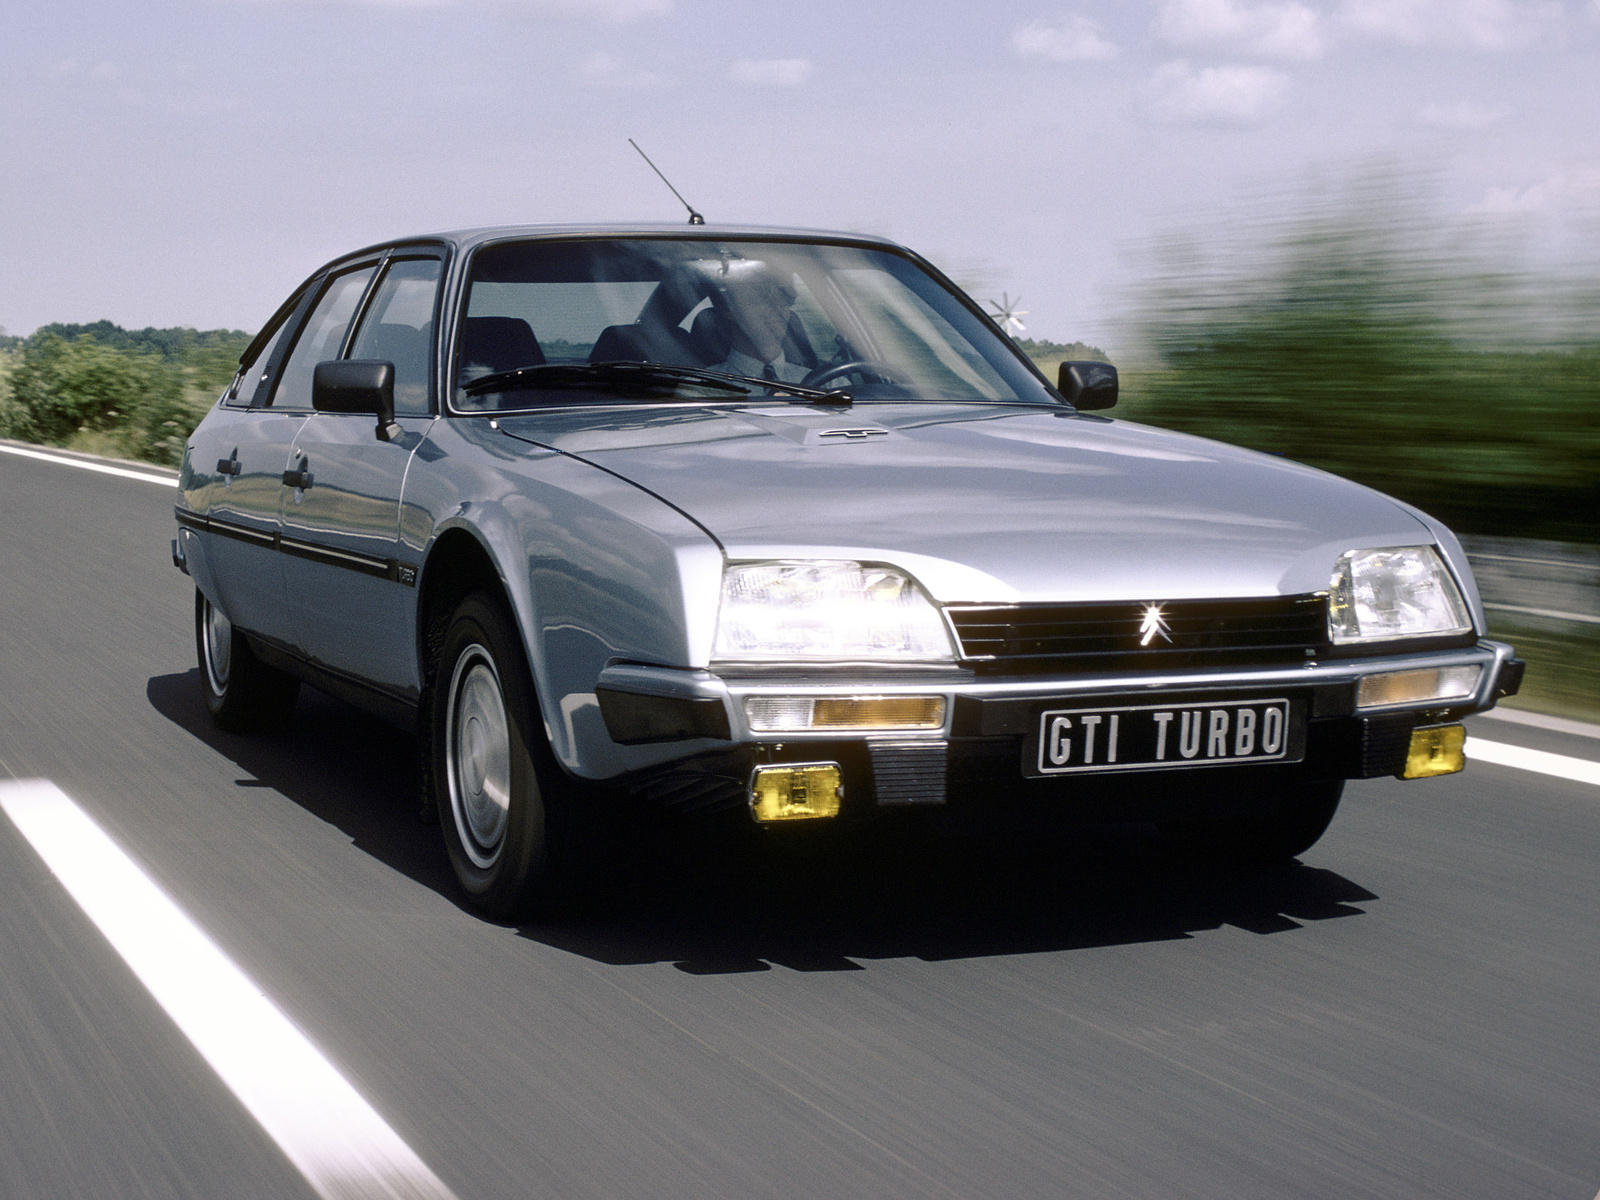 Citroen cx25 gti turbo